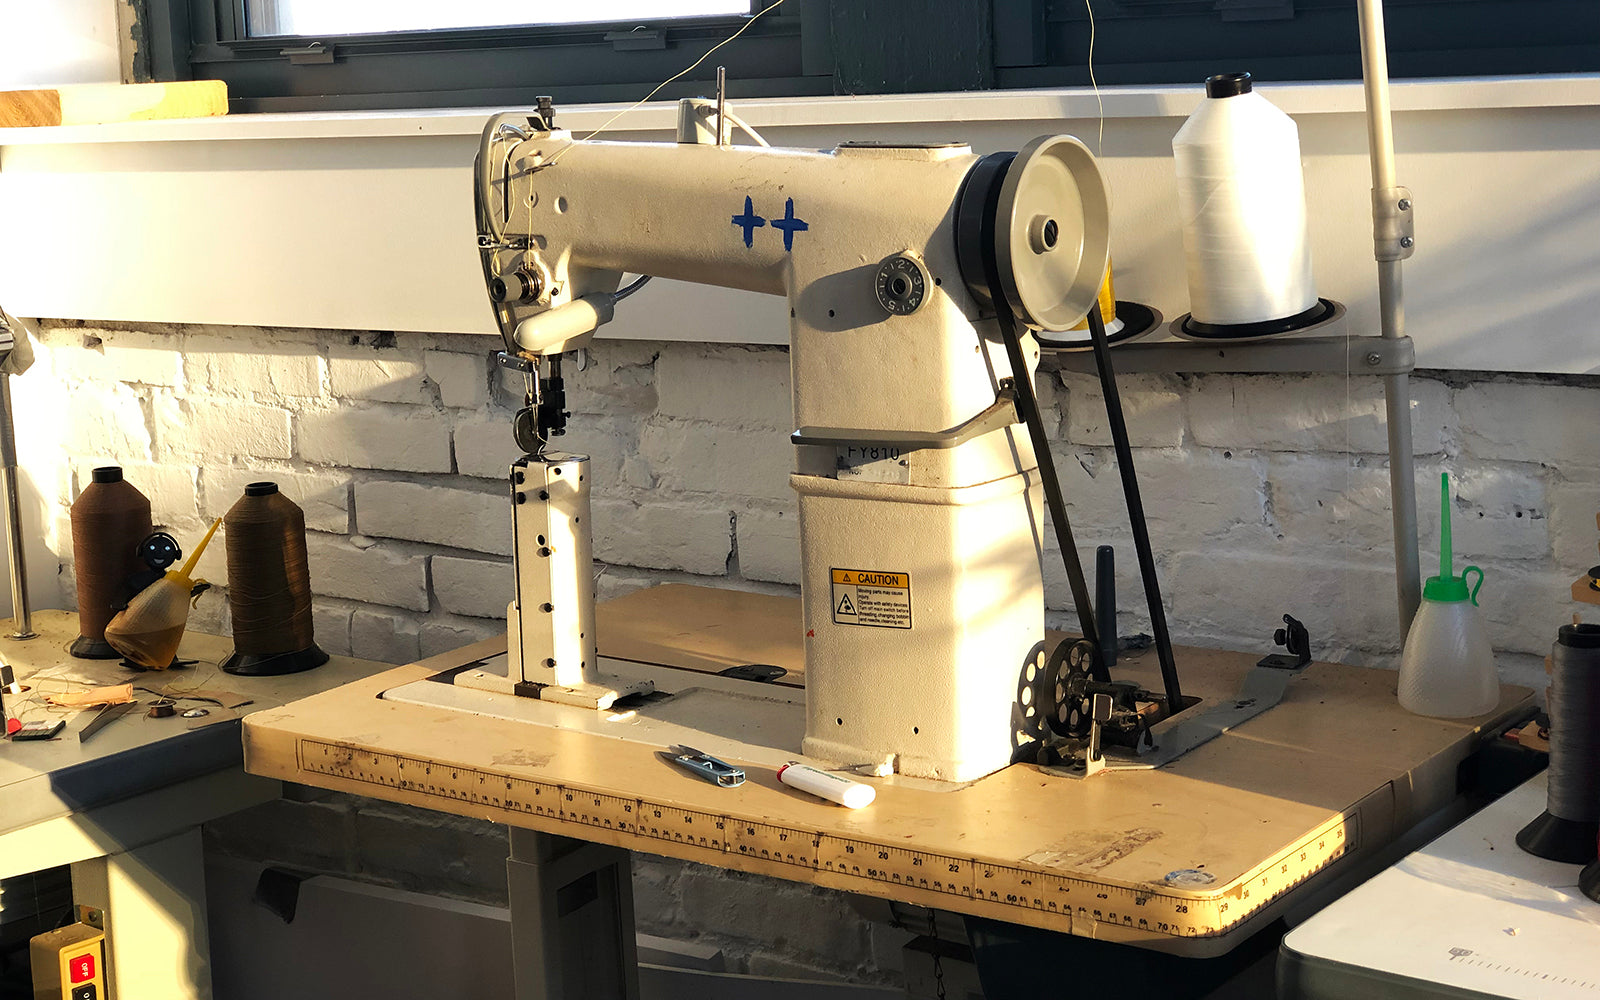 JBF customs sewing machine